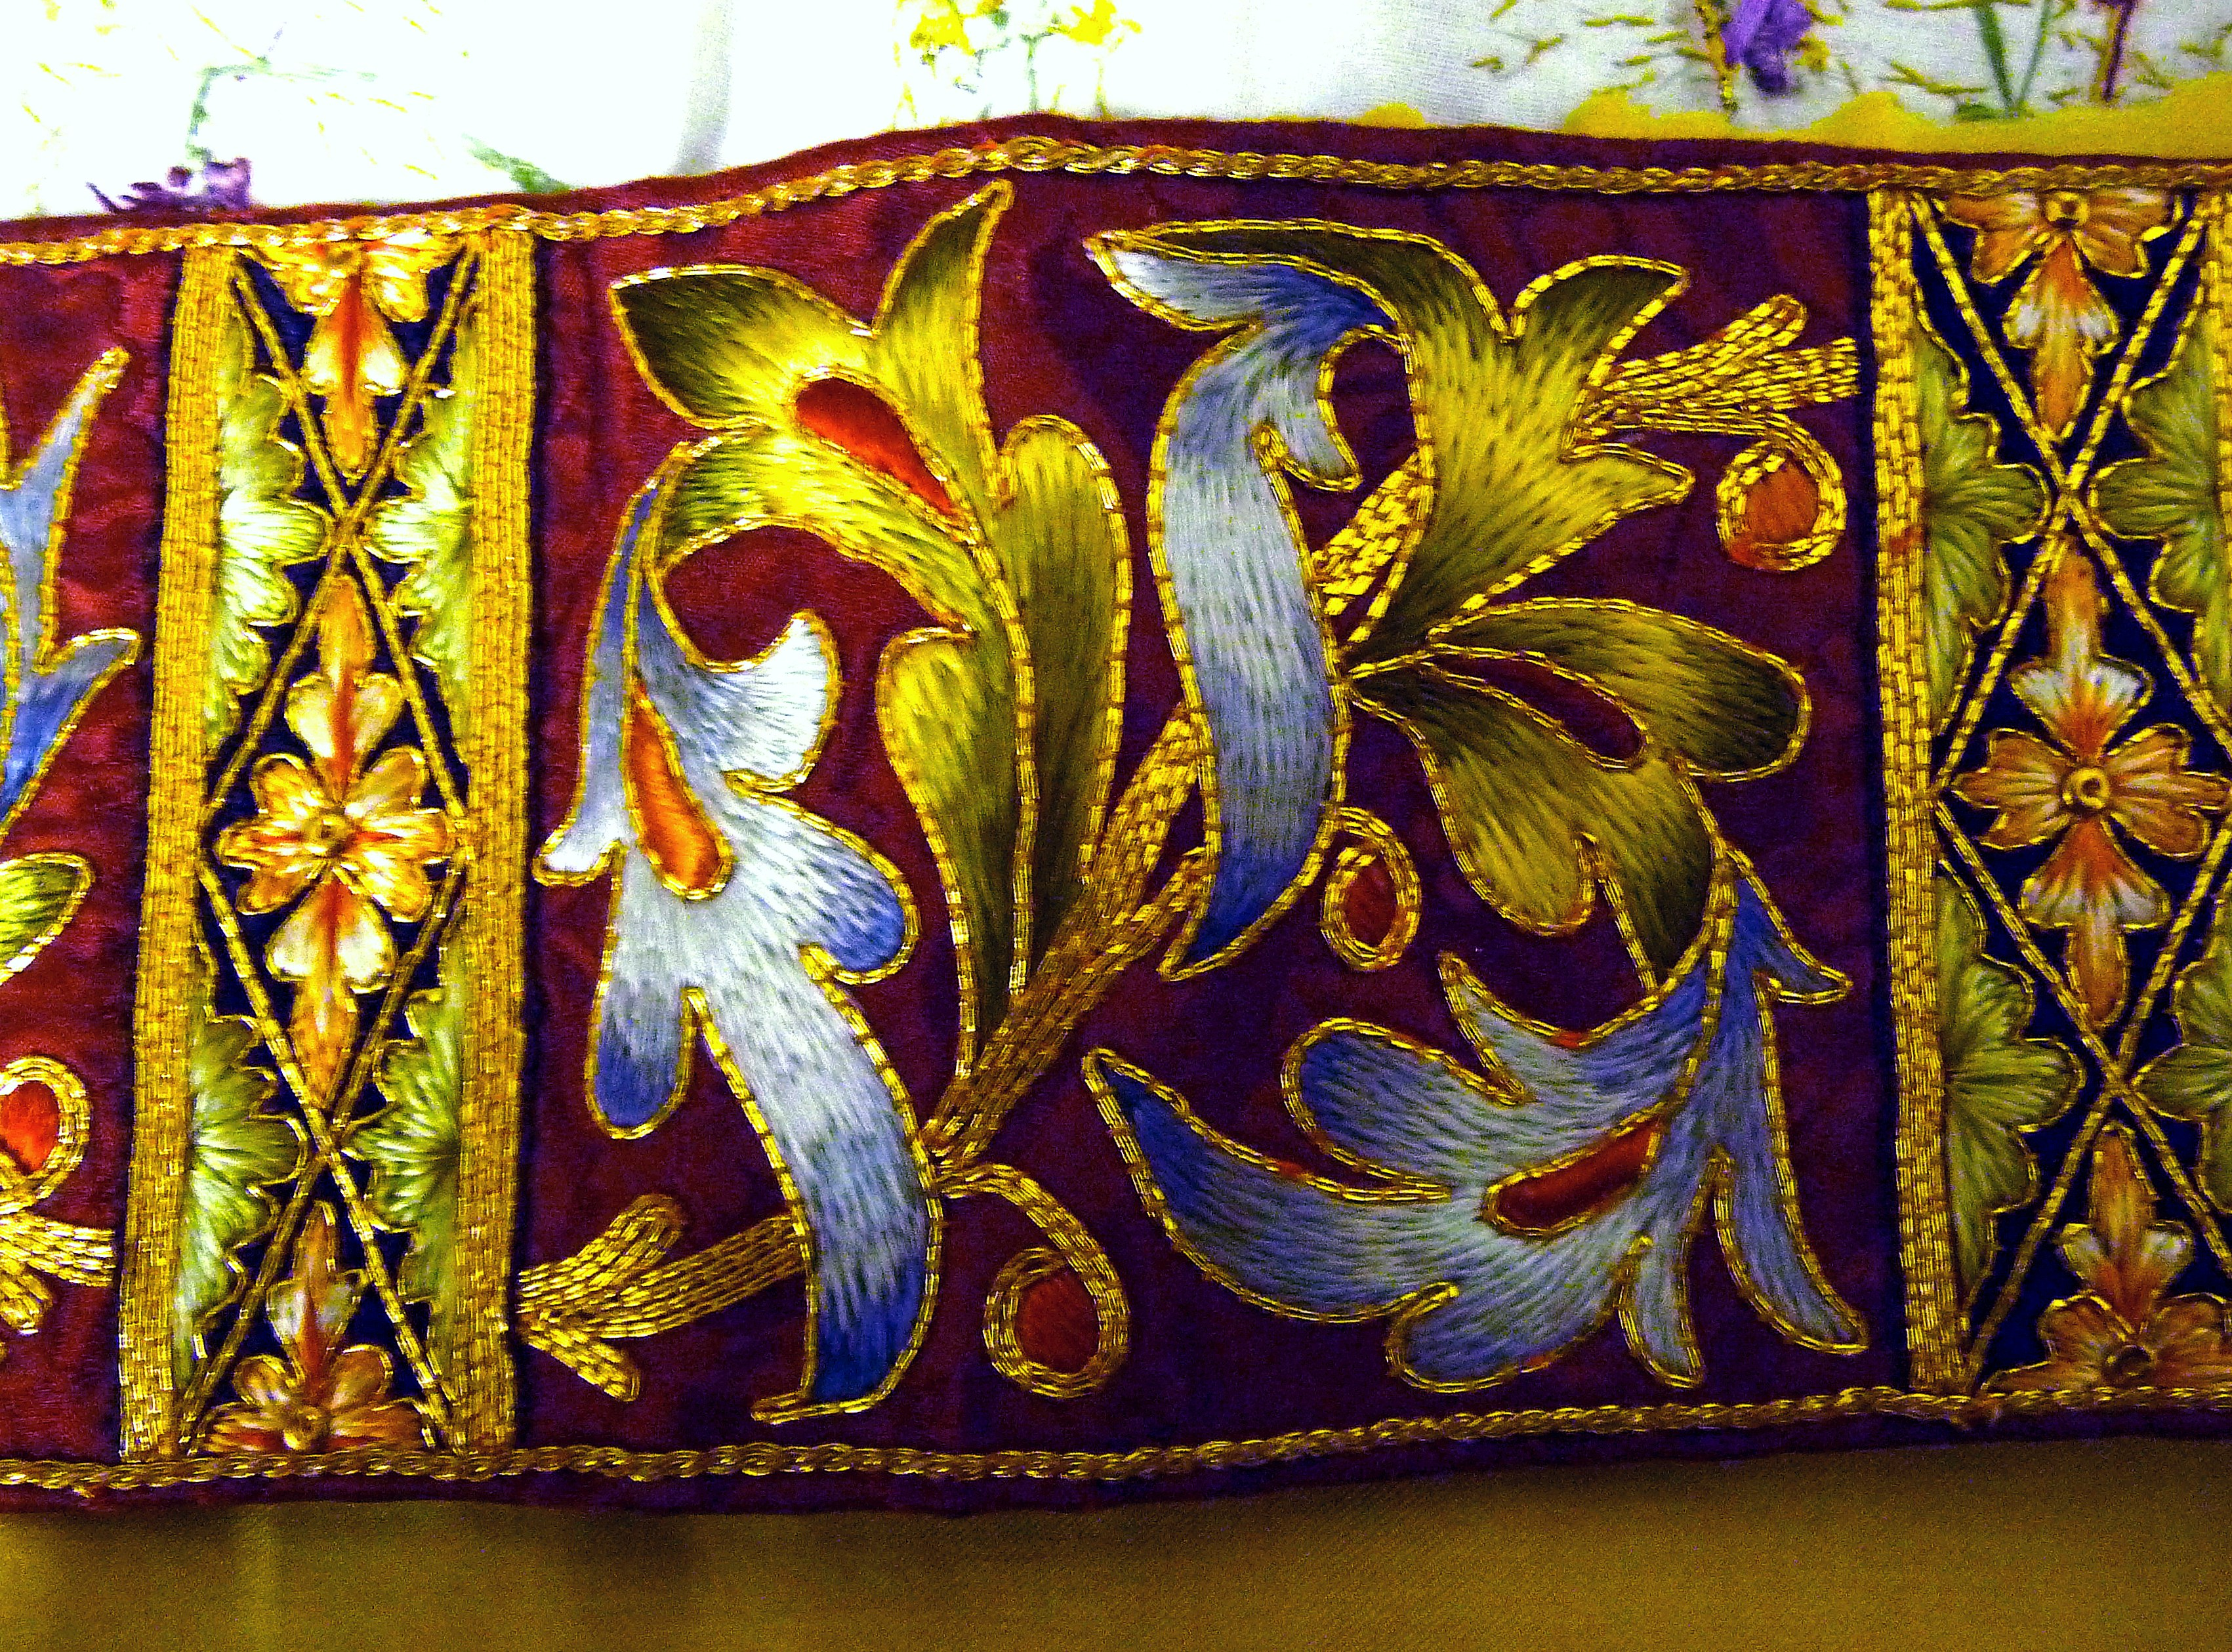 detail of embroidery on display in Elizabeth Hoare Gallery, Liverpool Cathedral